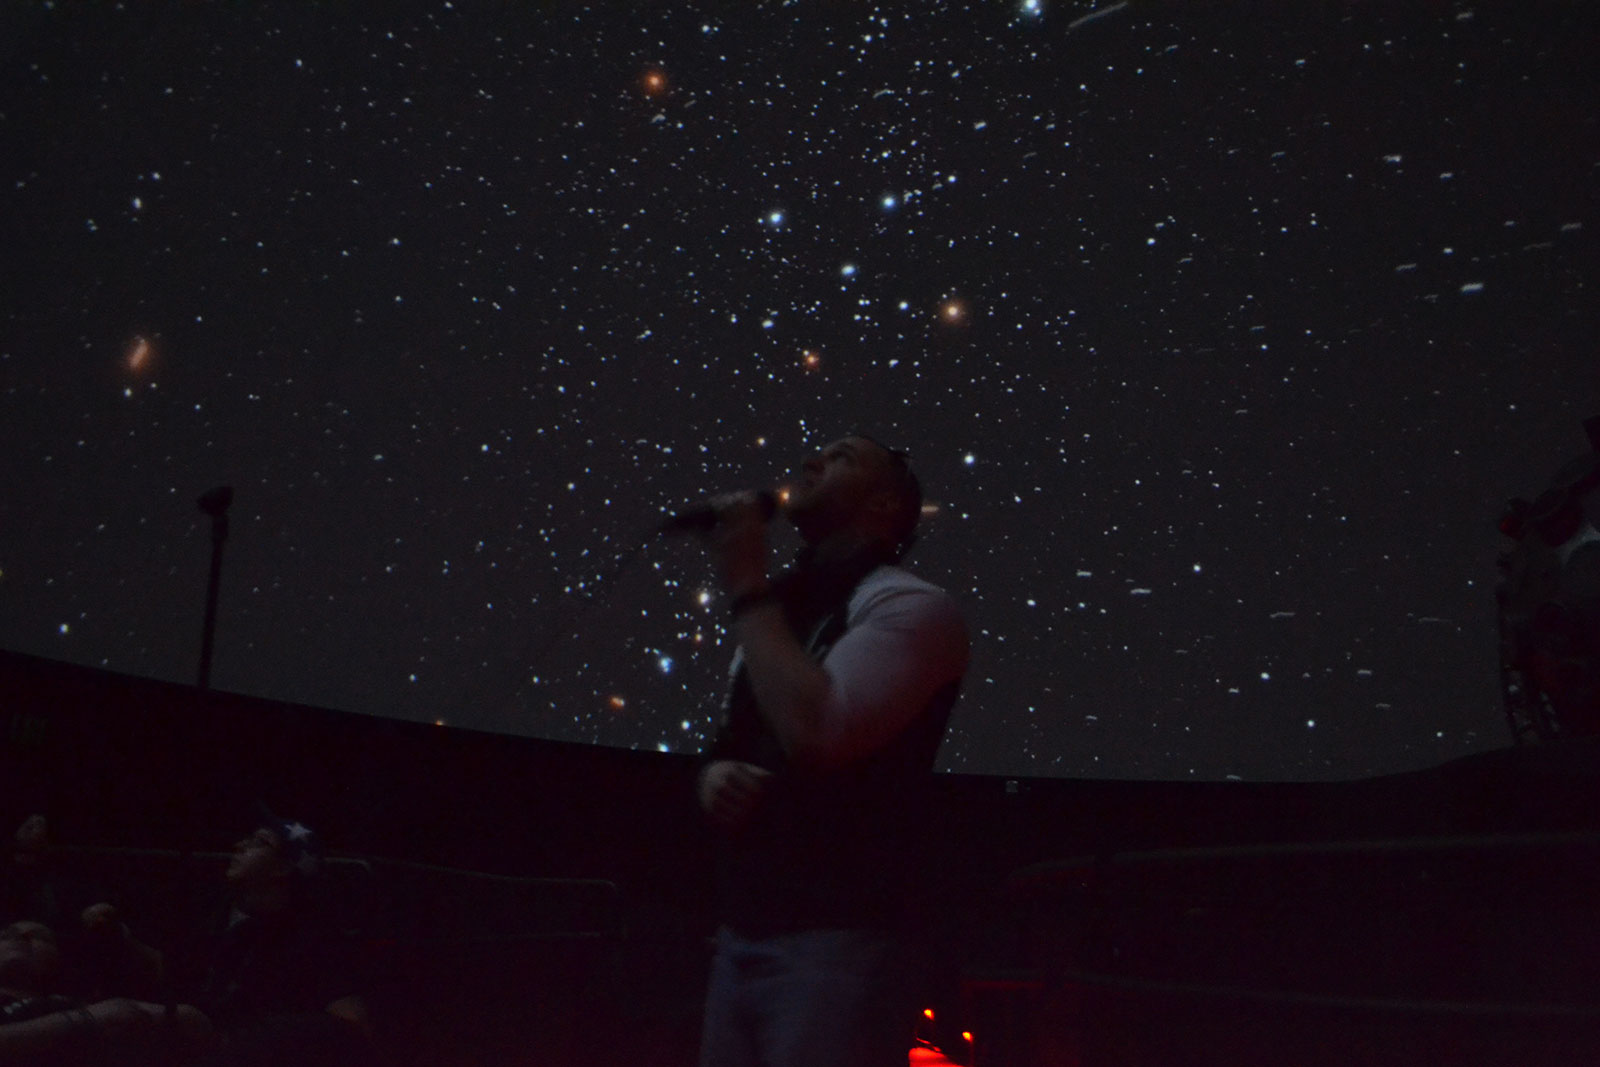 Singing under the stars